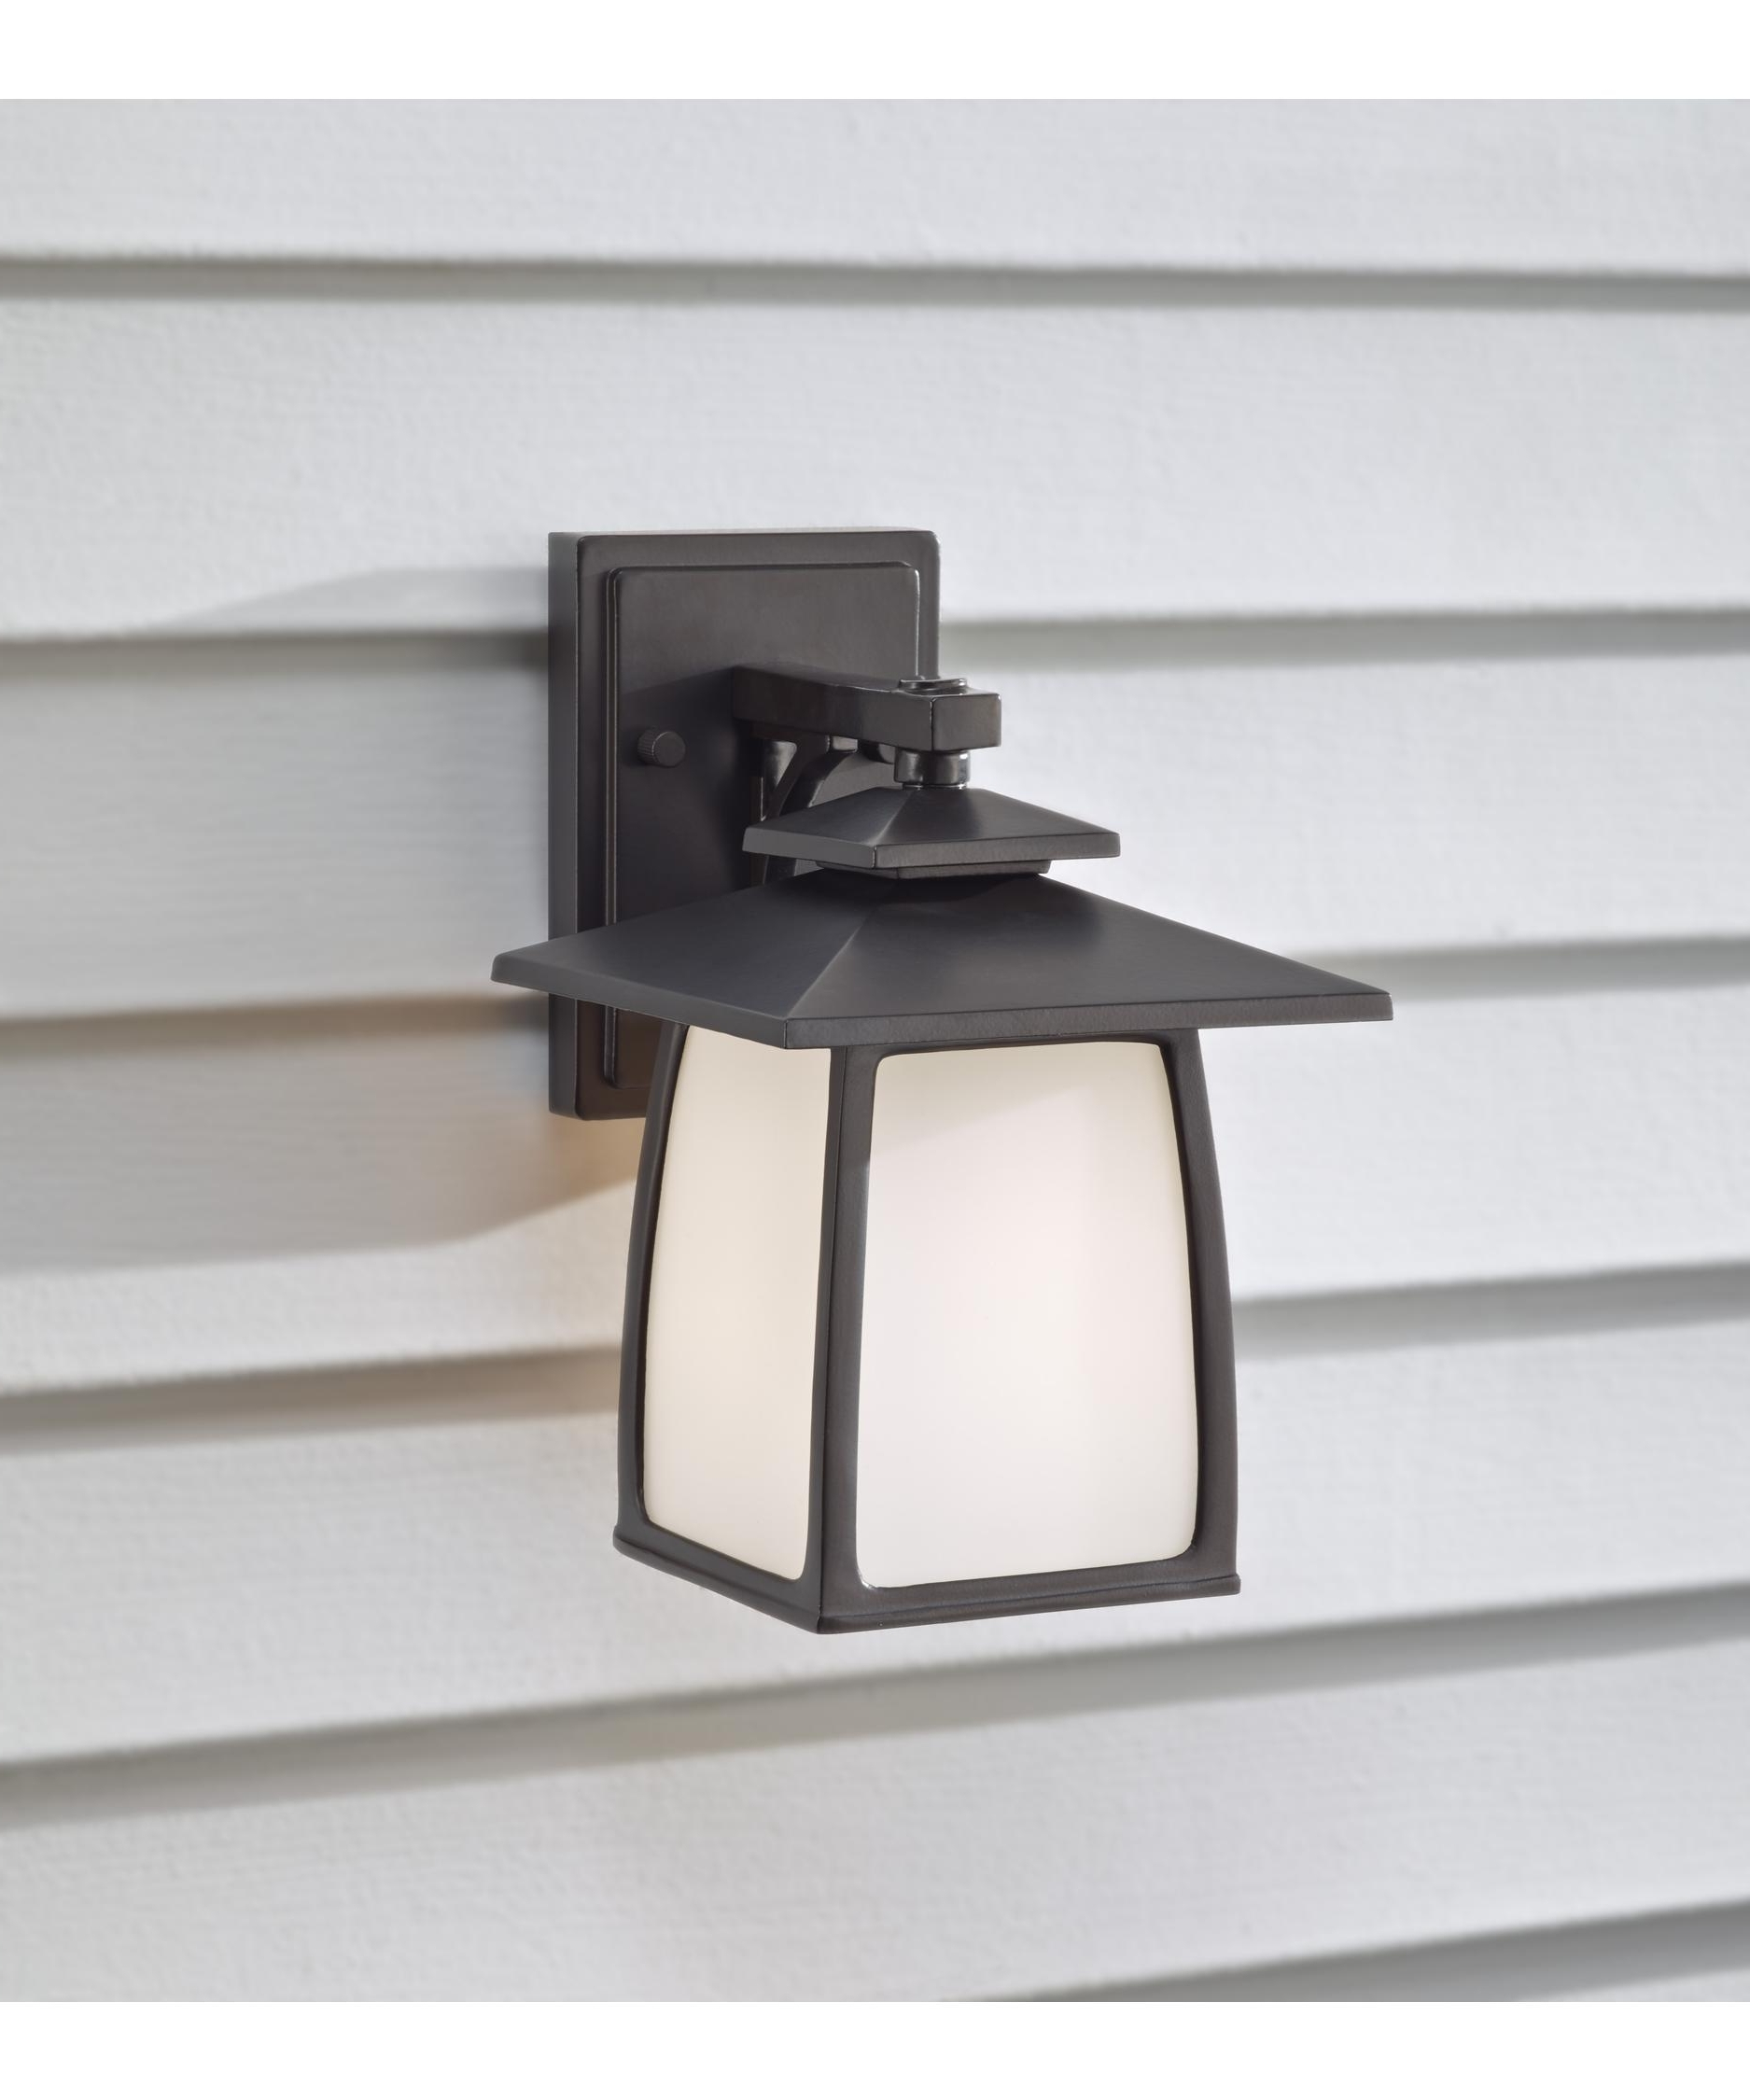 Big Outdoor Wall Lighting With Widely Used Murray Feiss Ol8500 Wright House 7 Inch Wide 1 Light Outdoor Wall (View 18 of 20)